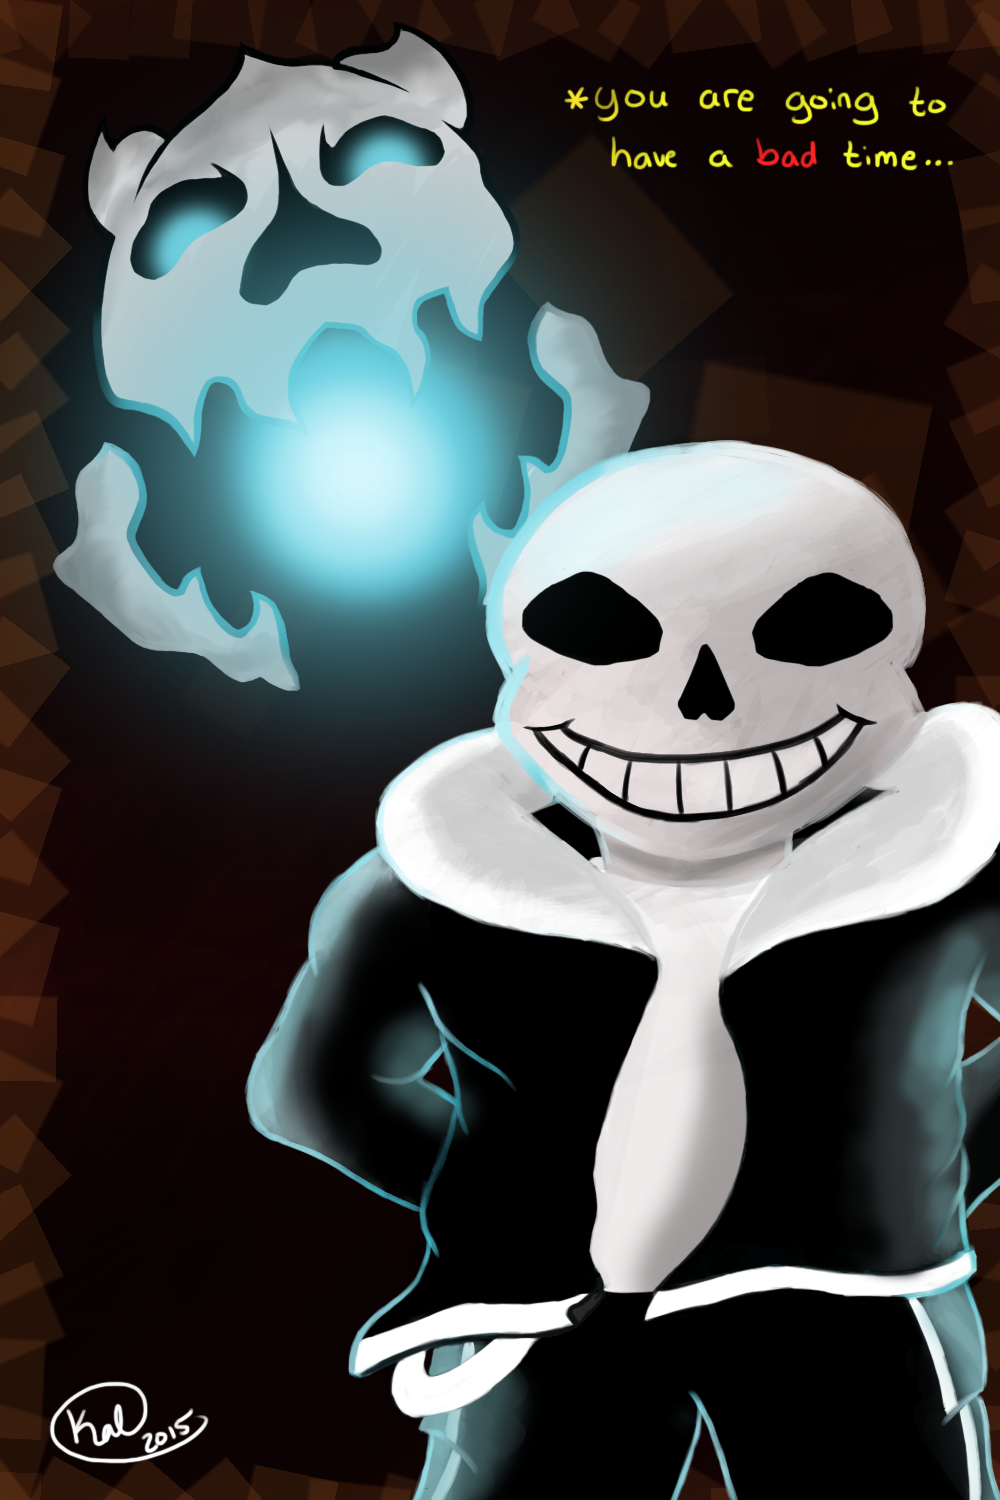 Most recent image: You are going to have a bad time...